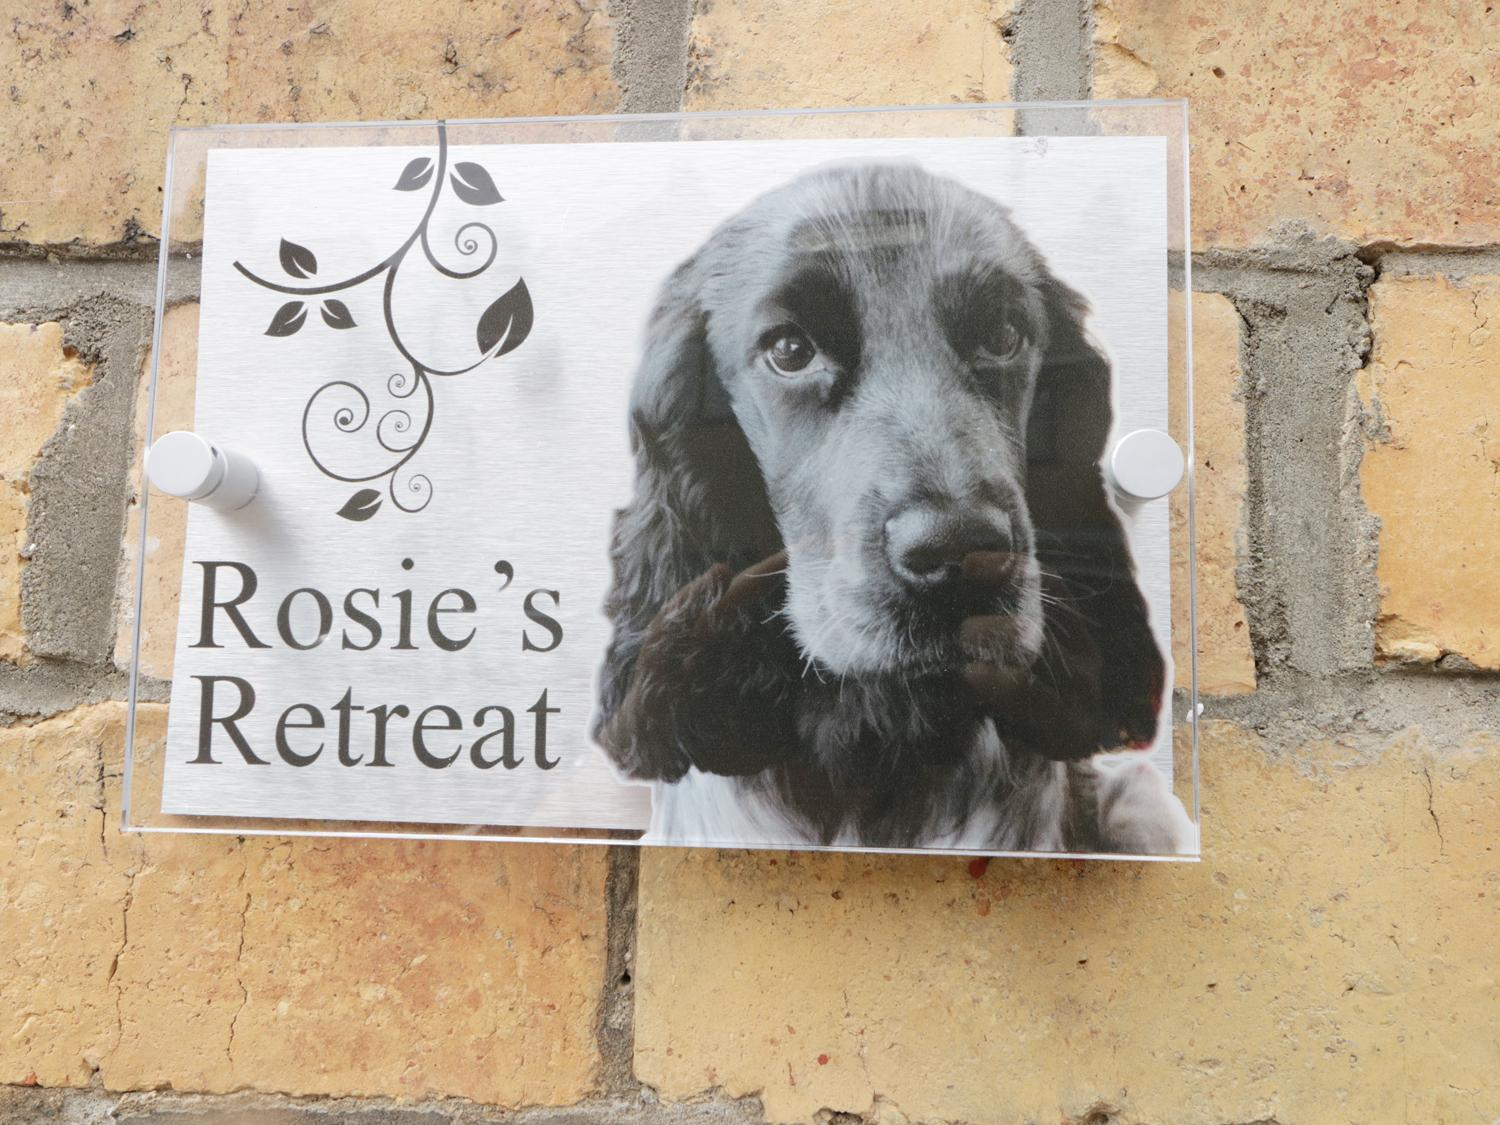 Rosie's Retreat